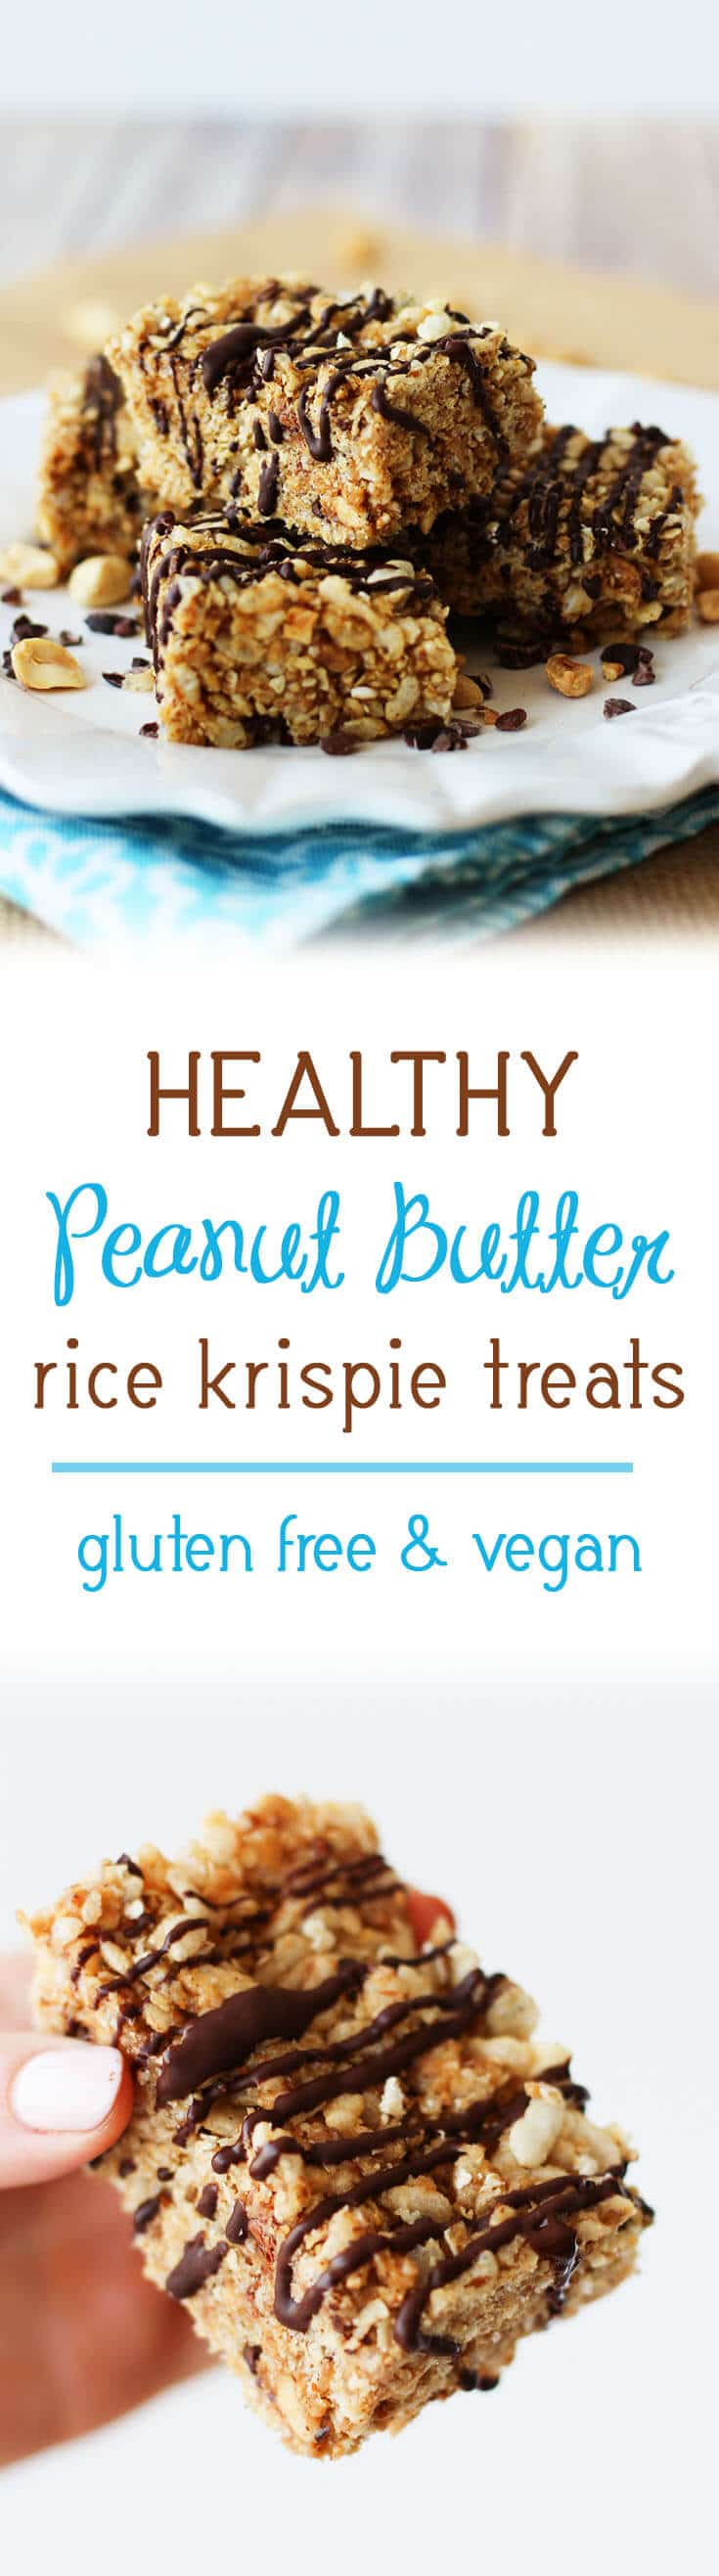 healthy peanut butter rice krispie treats